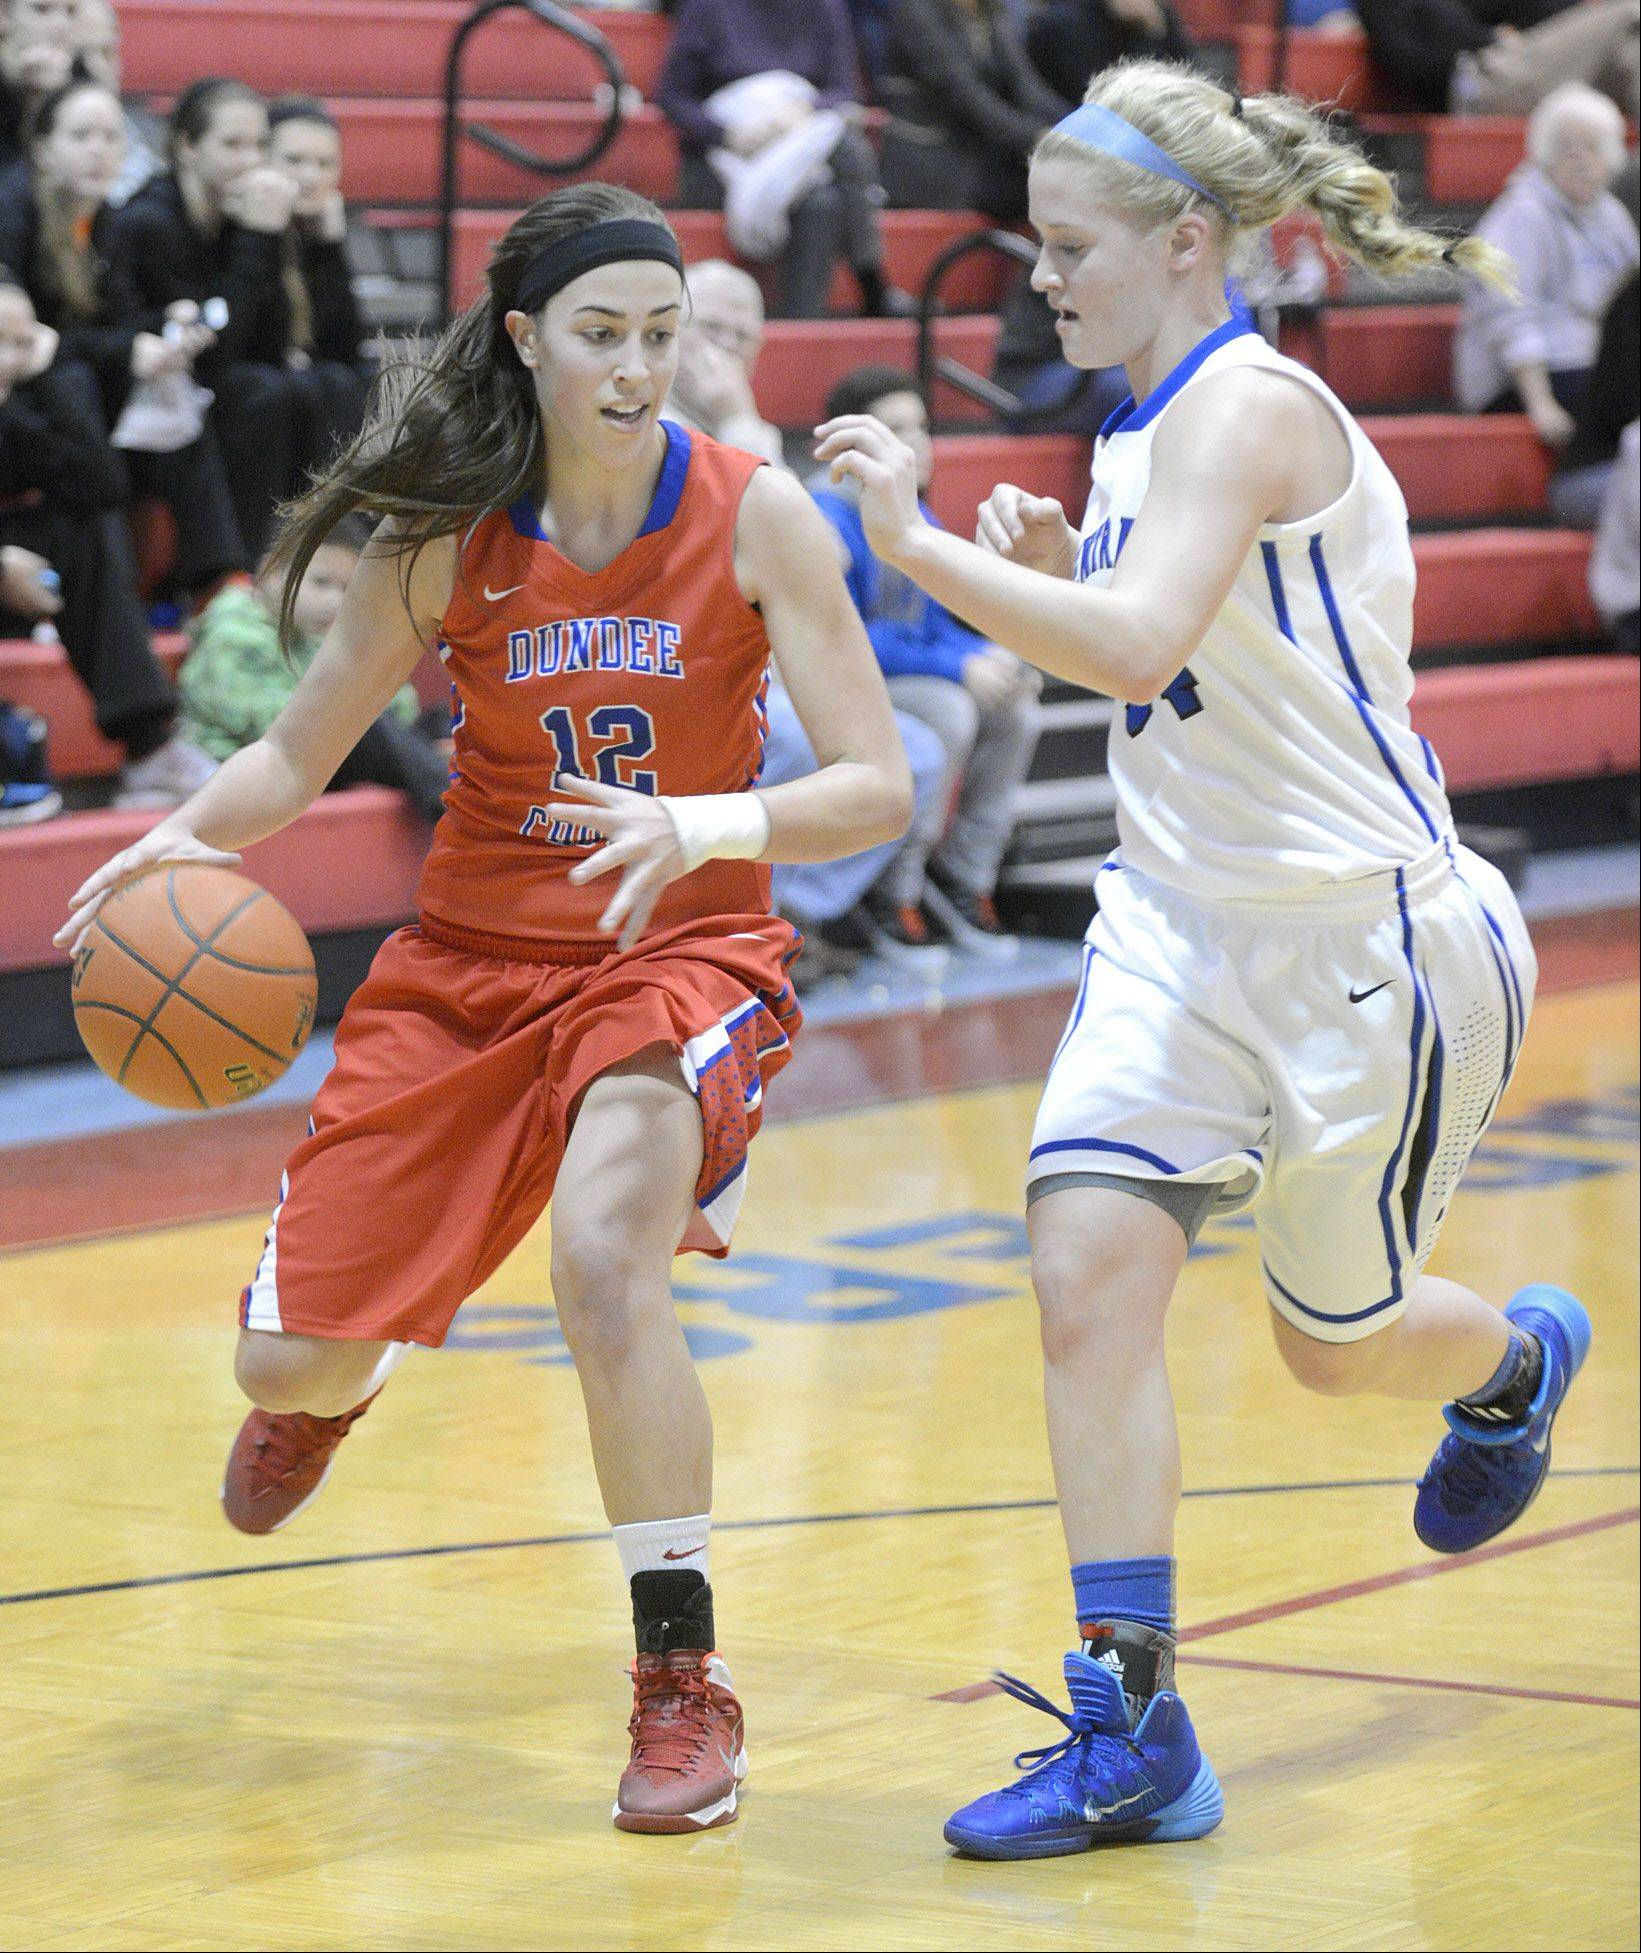 Dundee-Crown's Lauren Lococo looks to find away around Burlington Central's Sam Pryor in the second quarter on Friday, December 27.